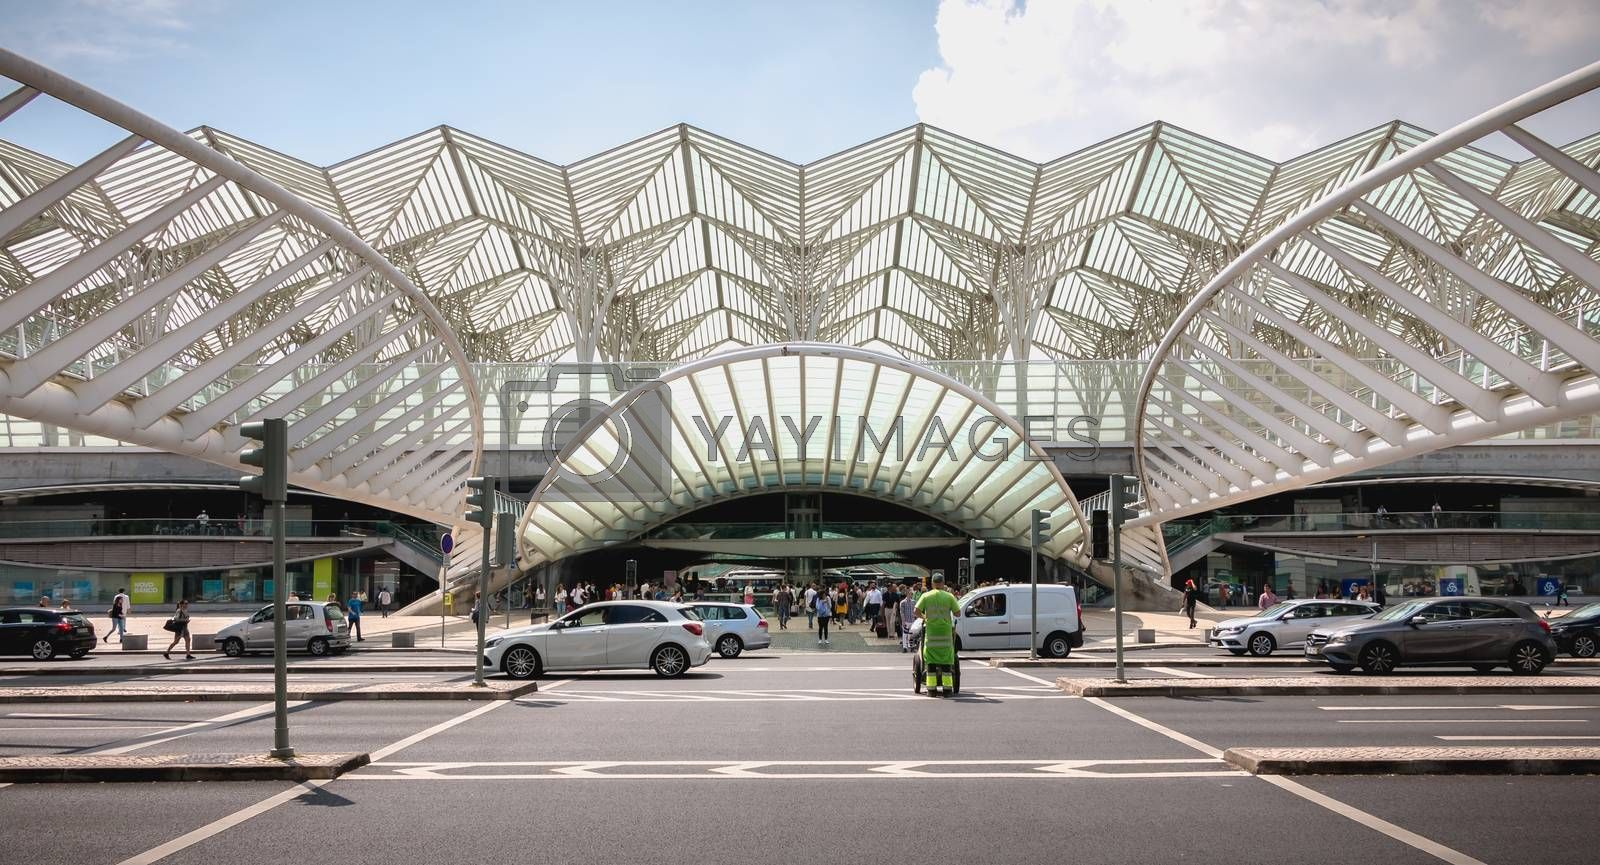 Lisbon, Portugal - May 7, 2018: Architecture detail and street atmosphere in front of the Lisbon Oriente train station on a spring day